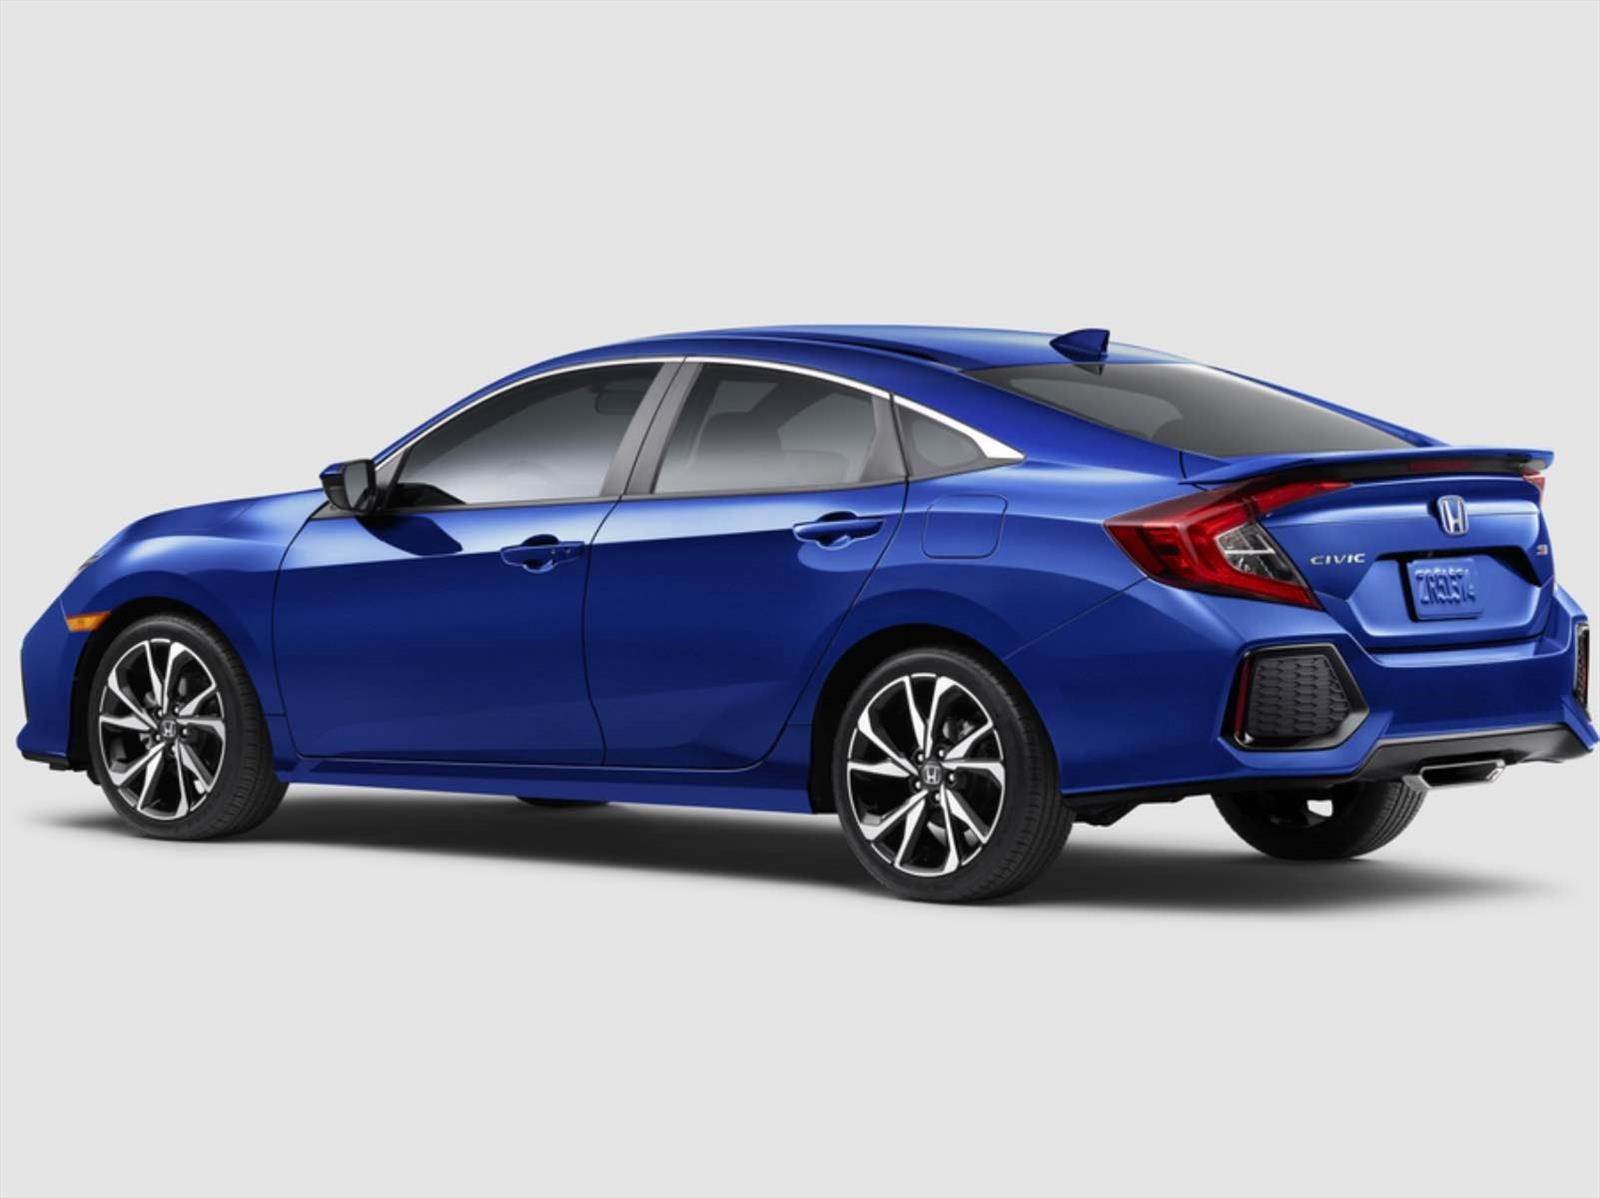 honda civic si 2018 debuta autocosmos com civic logo eps civic logo eps